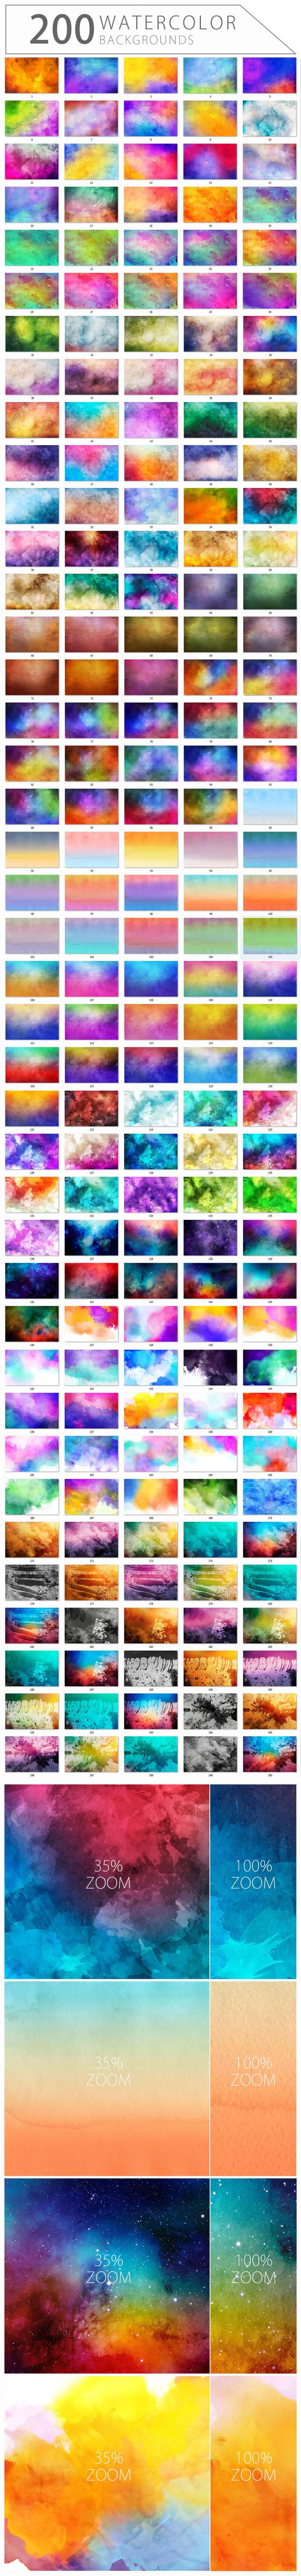 200-Watercolor-Backgrounds-prevA